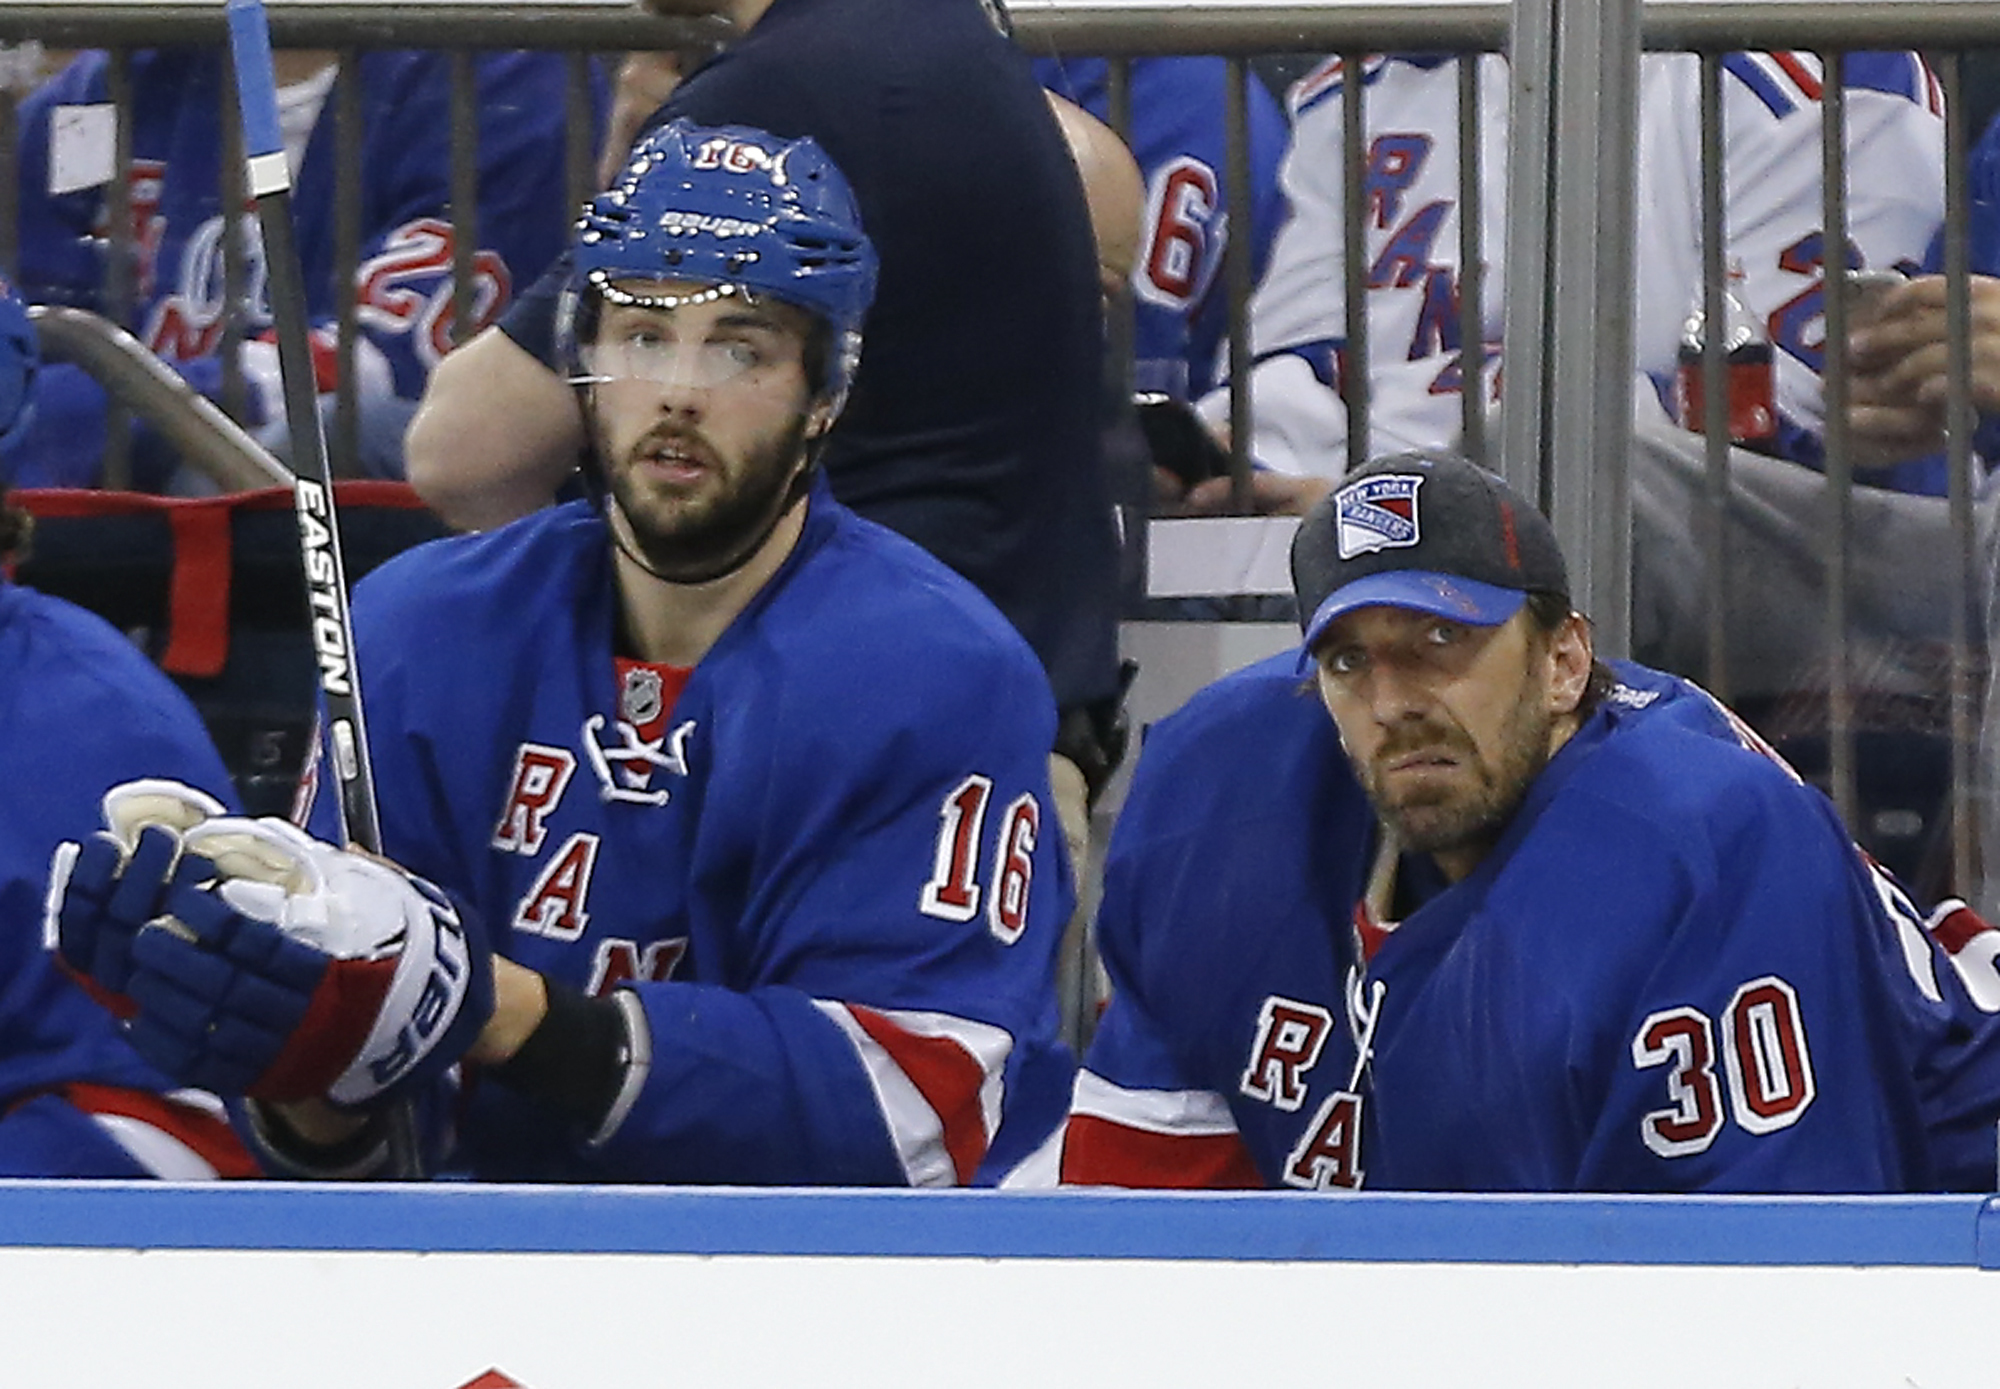 New York Rangers goalie Henrik Lundqvist (30) watches from the bench alongside center Derick Brassard (16) during the second period after giving up four goals to the Pittsburgh Penguins in Game 4 of an NHL hockey first-round Stanley Cup playoff series, Th